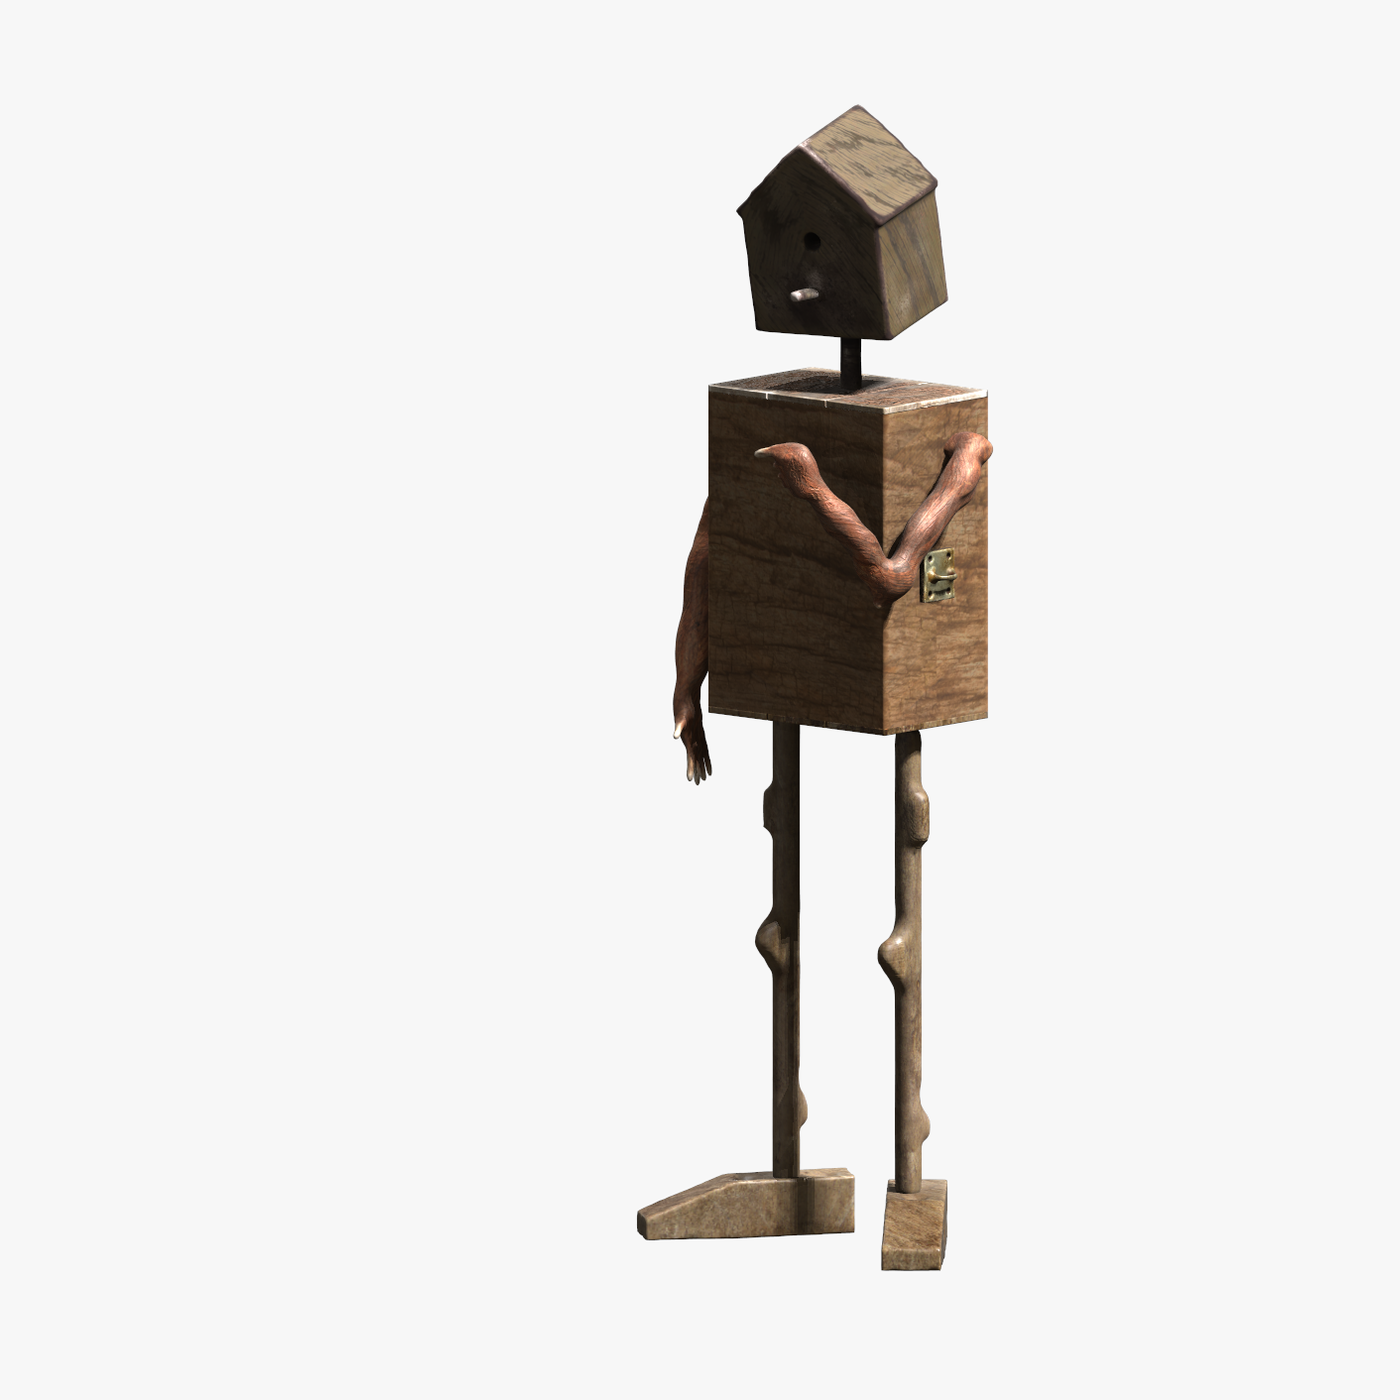 Lowpoly wooden man bird cage